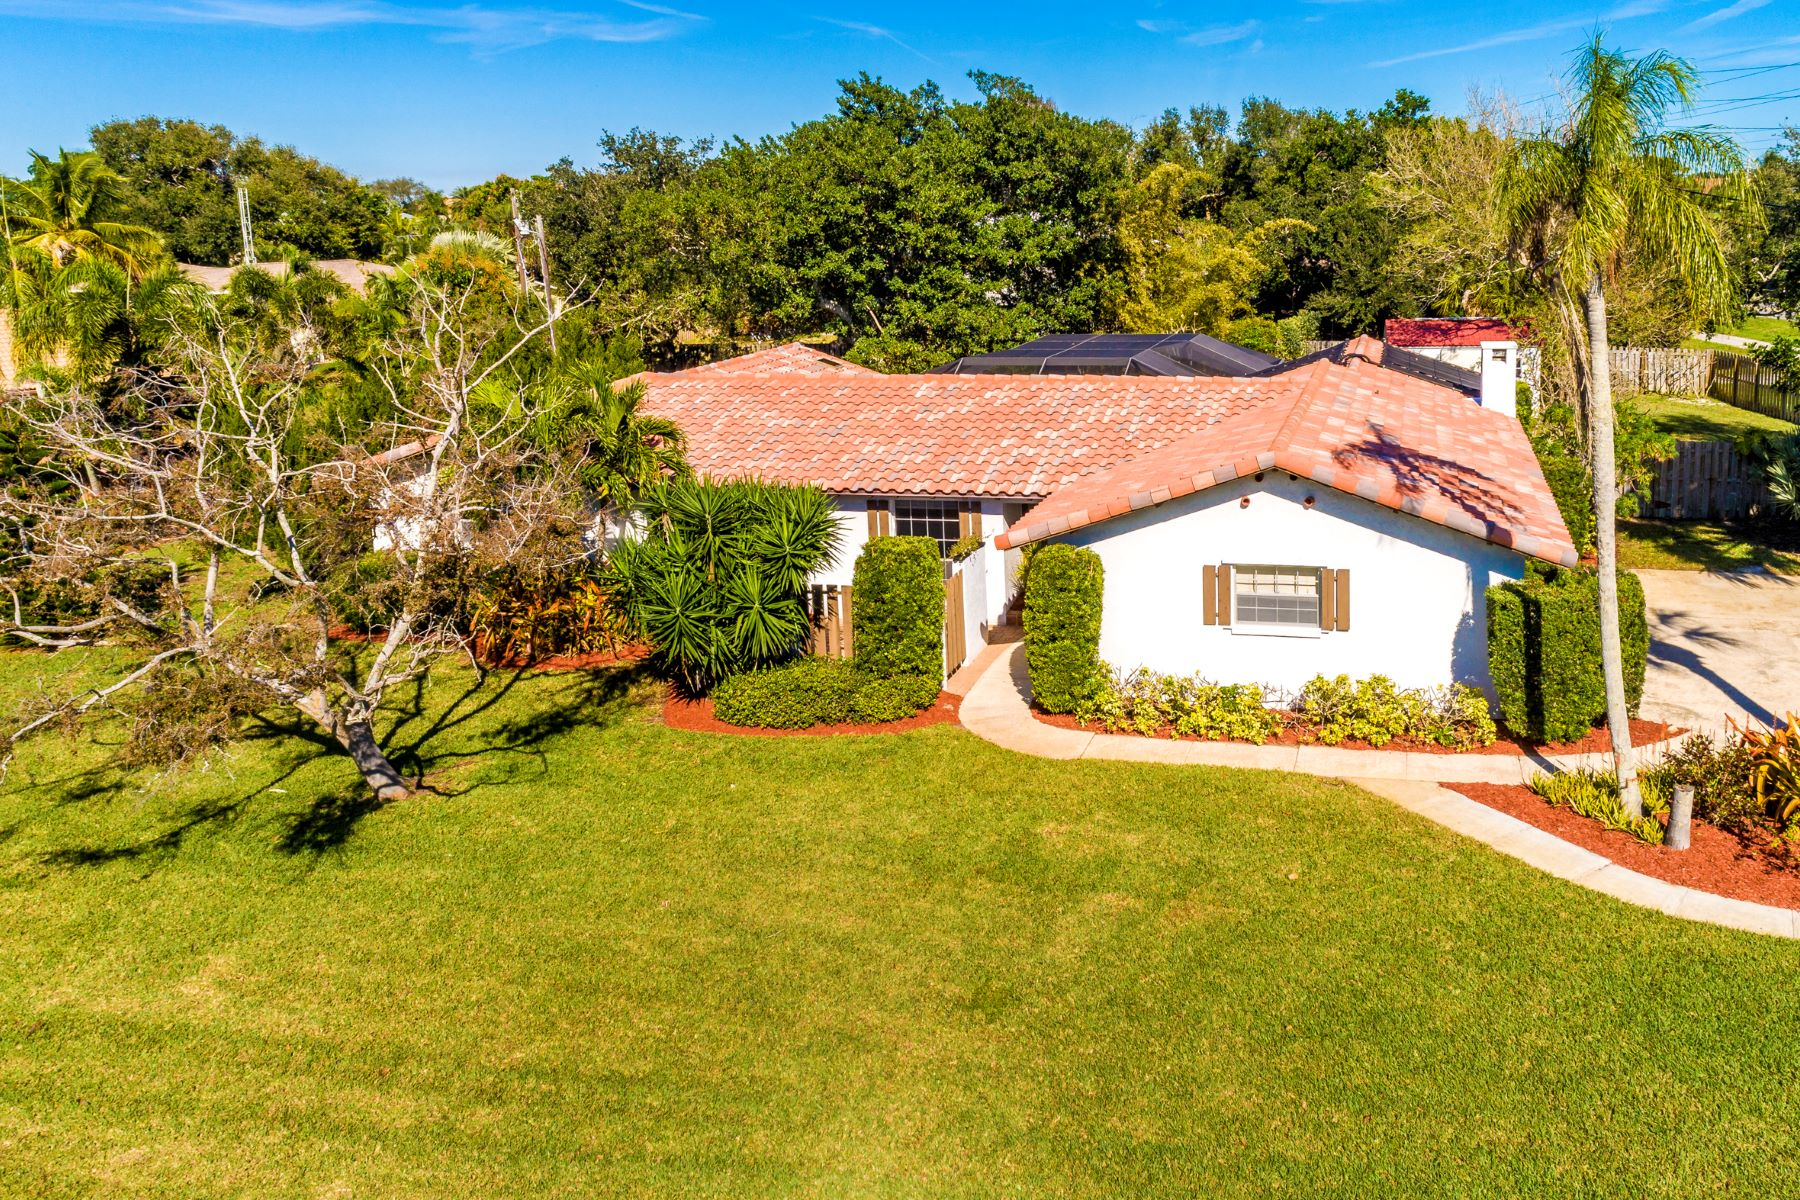 Single Family Homes for Sale at Spectacular Pool Home Perfect for Entertaining! 12 Highland Drive Indialantic, Florida 32903 United States